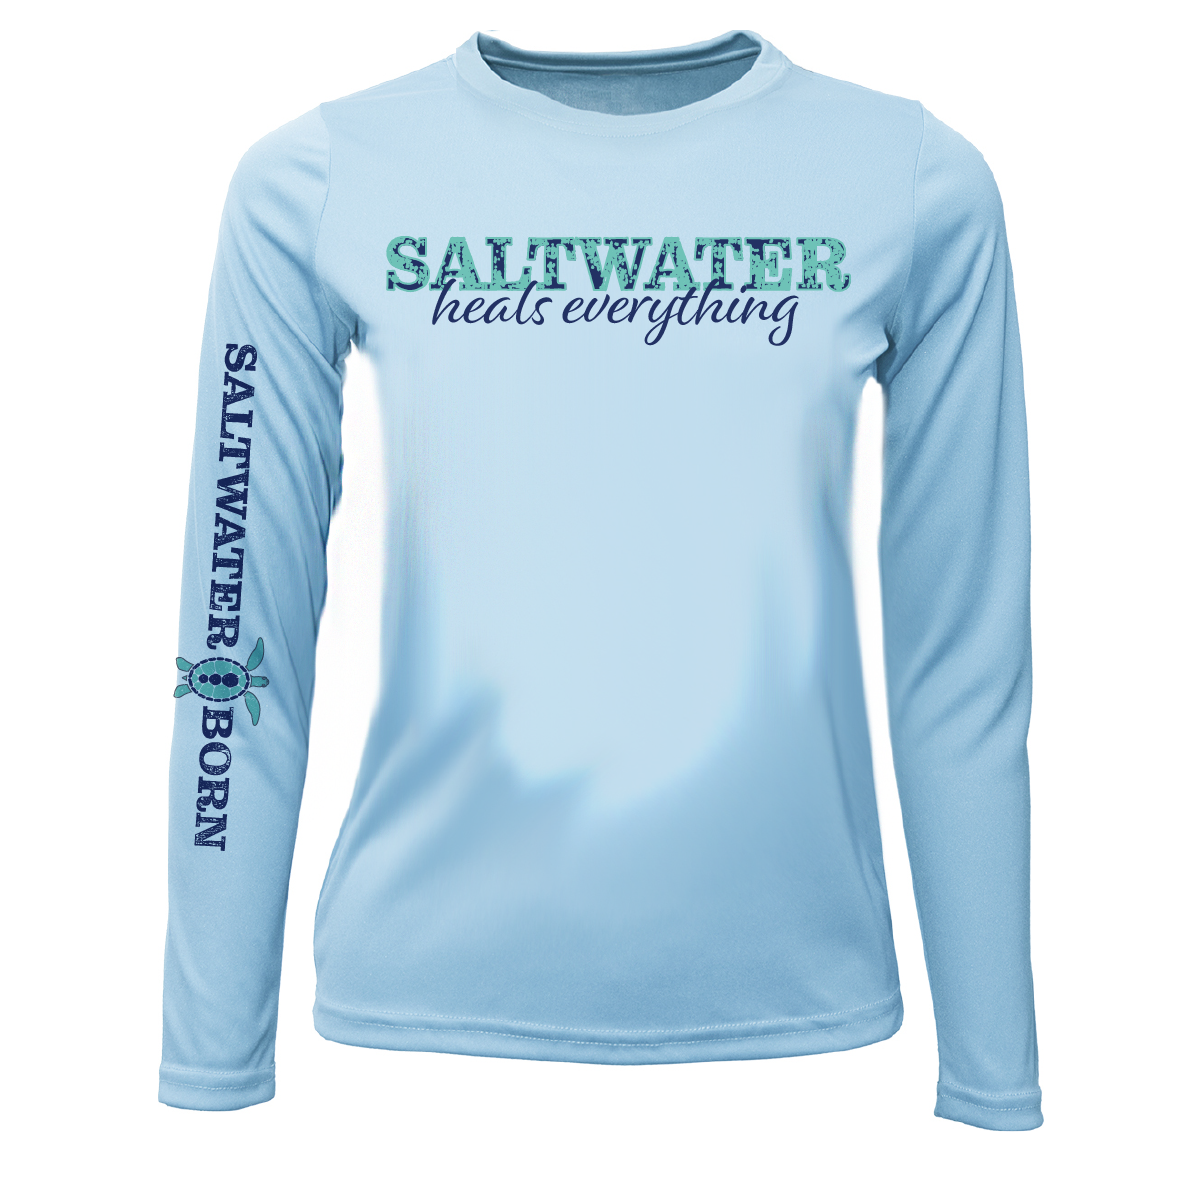 """Saltwater Heals Everything"" Girls Long Sleeve UPF 50+ Dry-Fit Shirt"